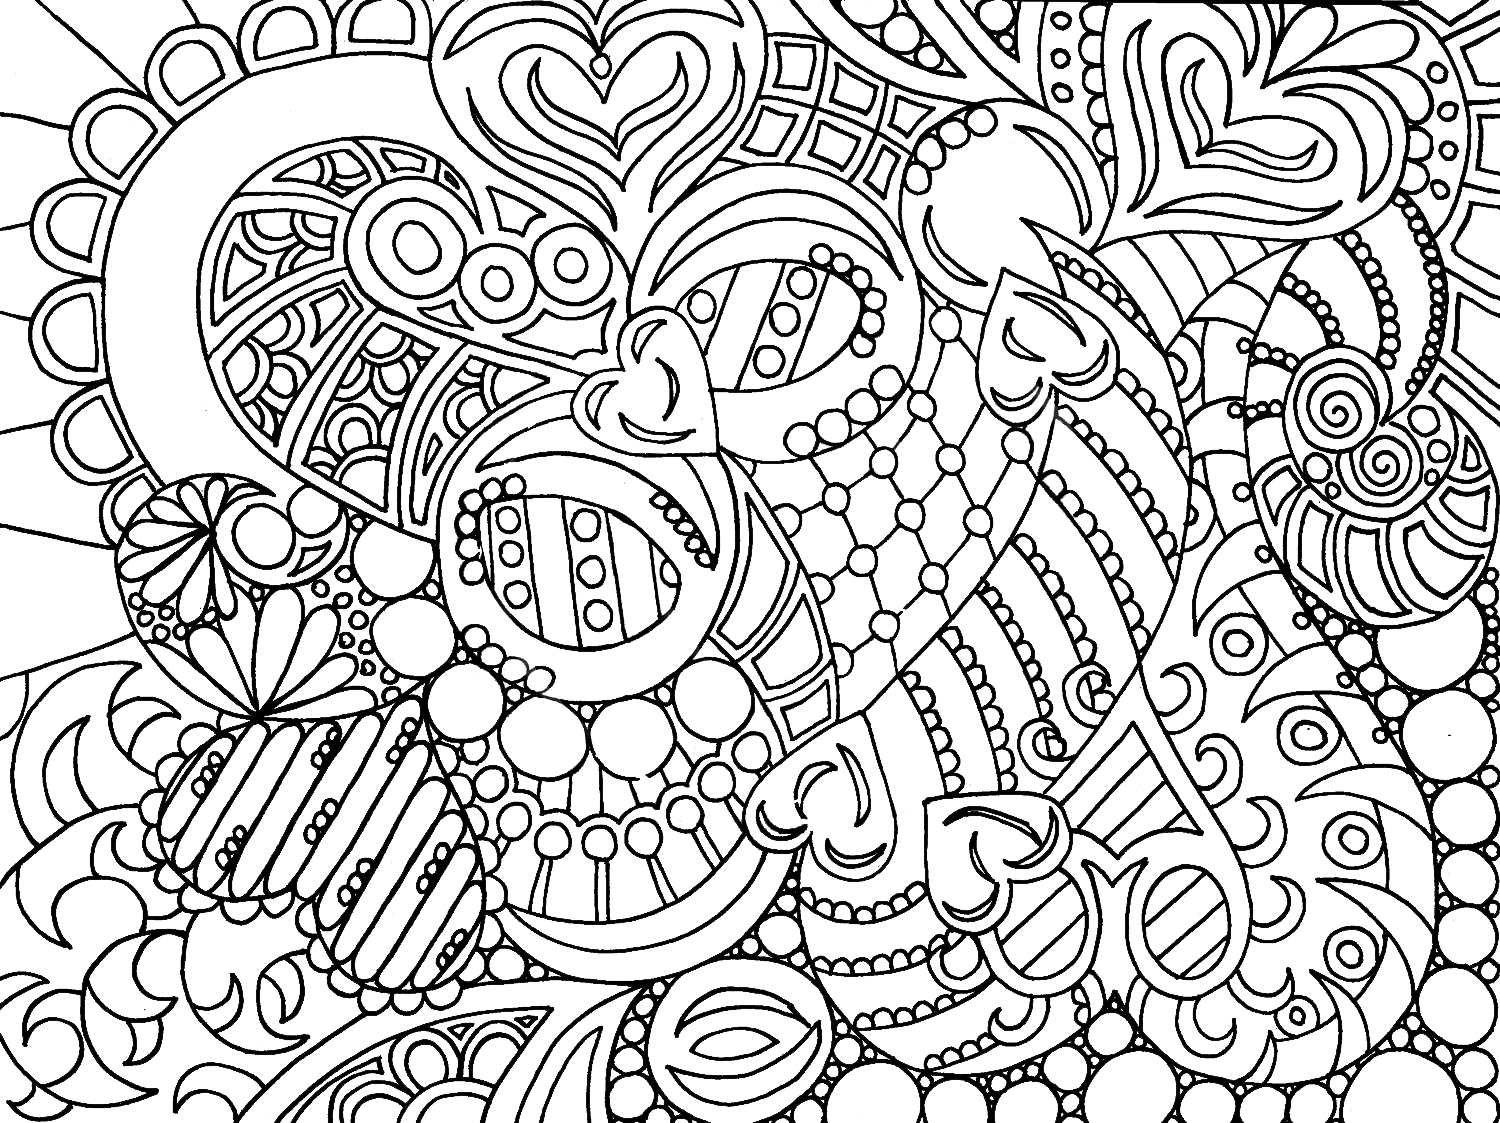 Advanced Coloring Pages Only Coloring Pages Free Advanced Coloring Pages